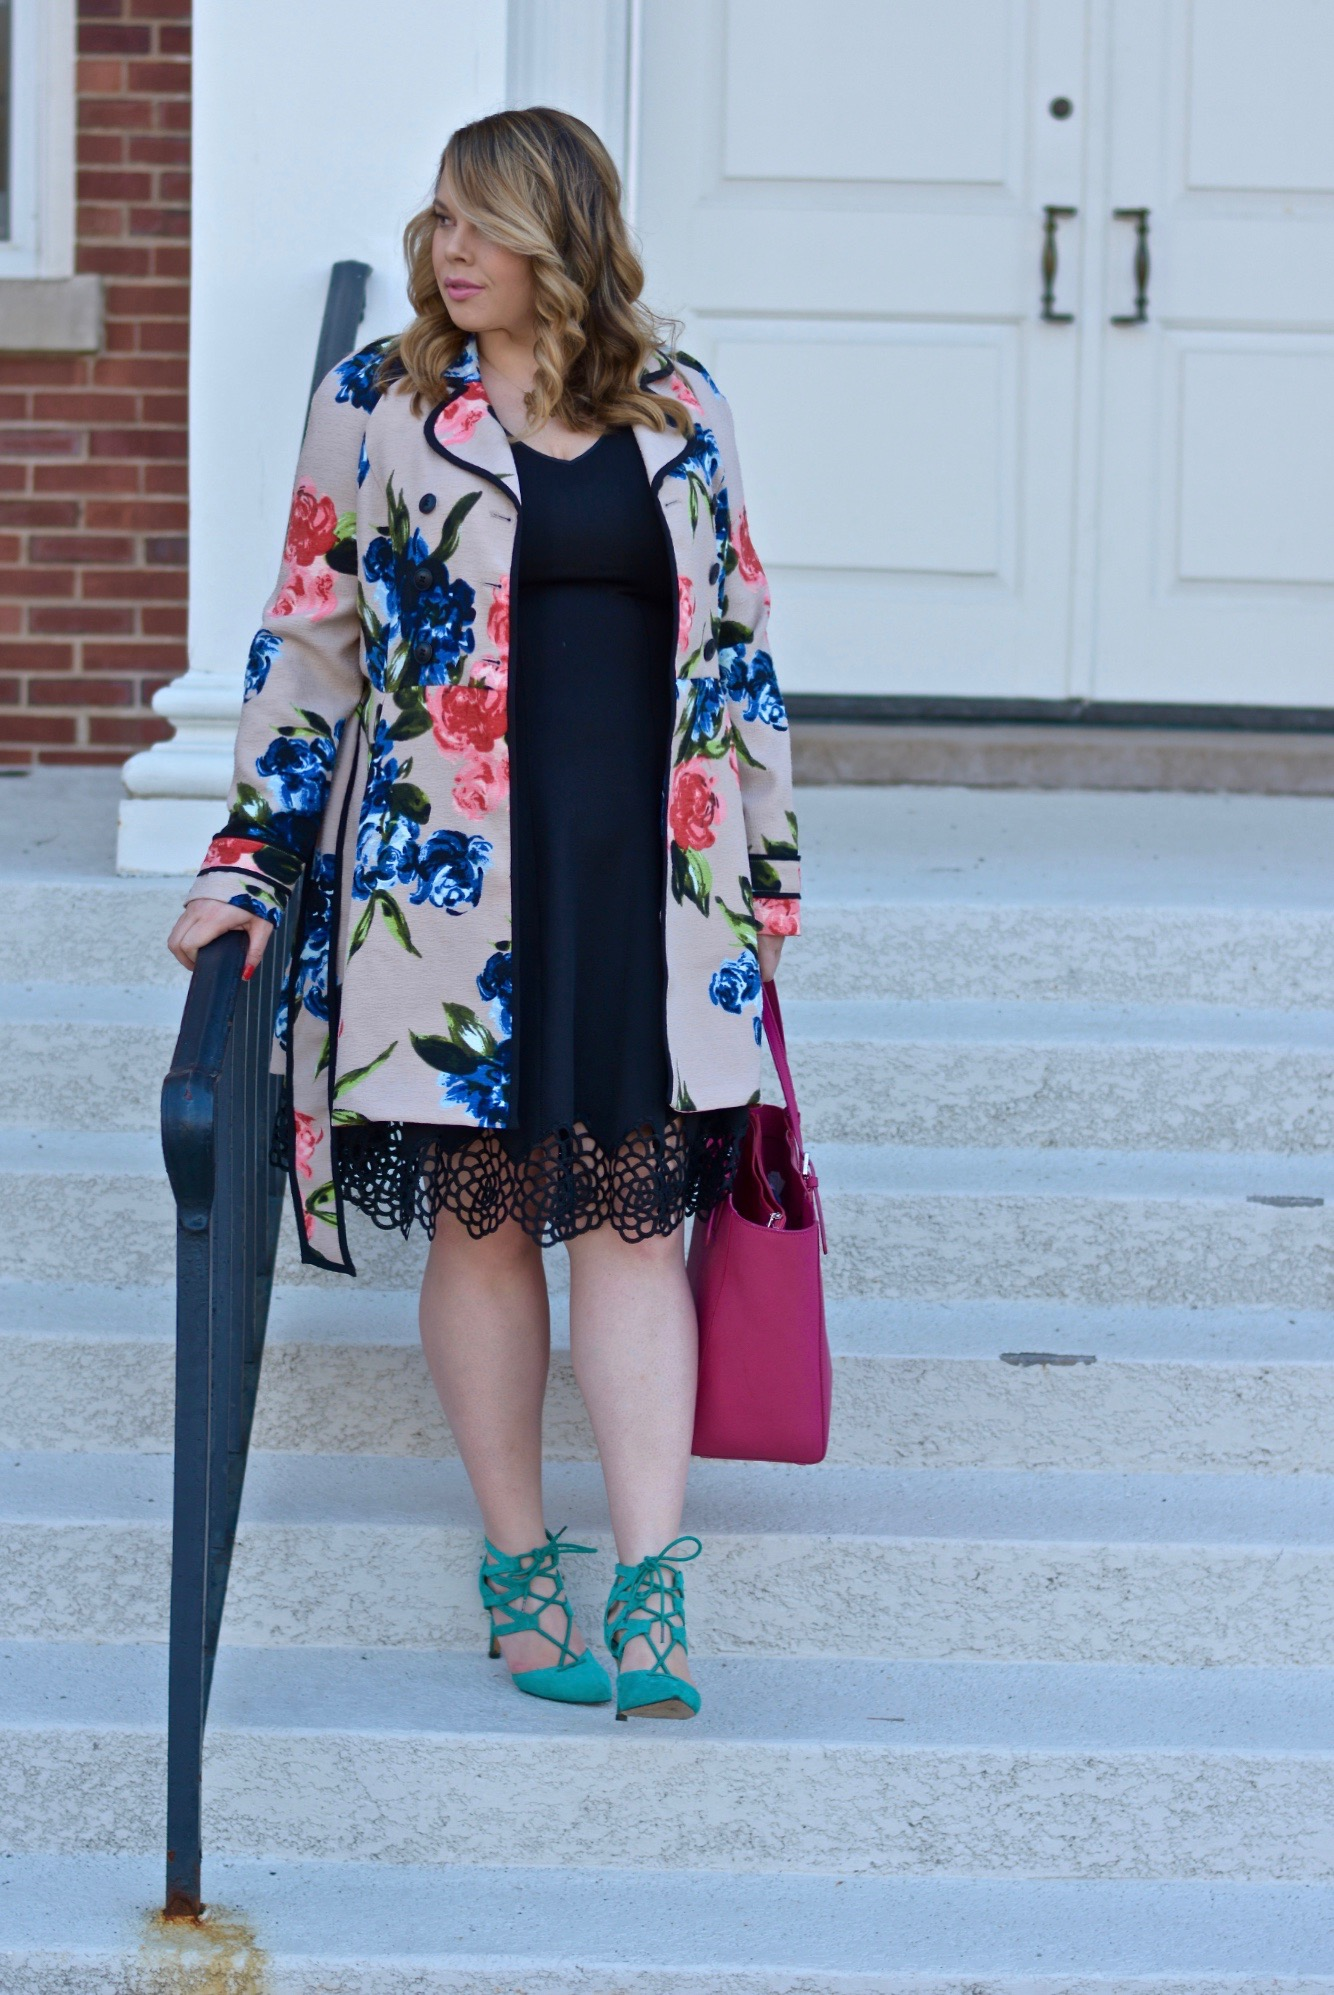 workwear wednesday- florals 5